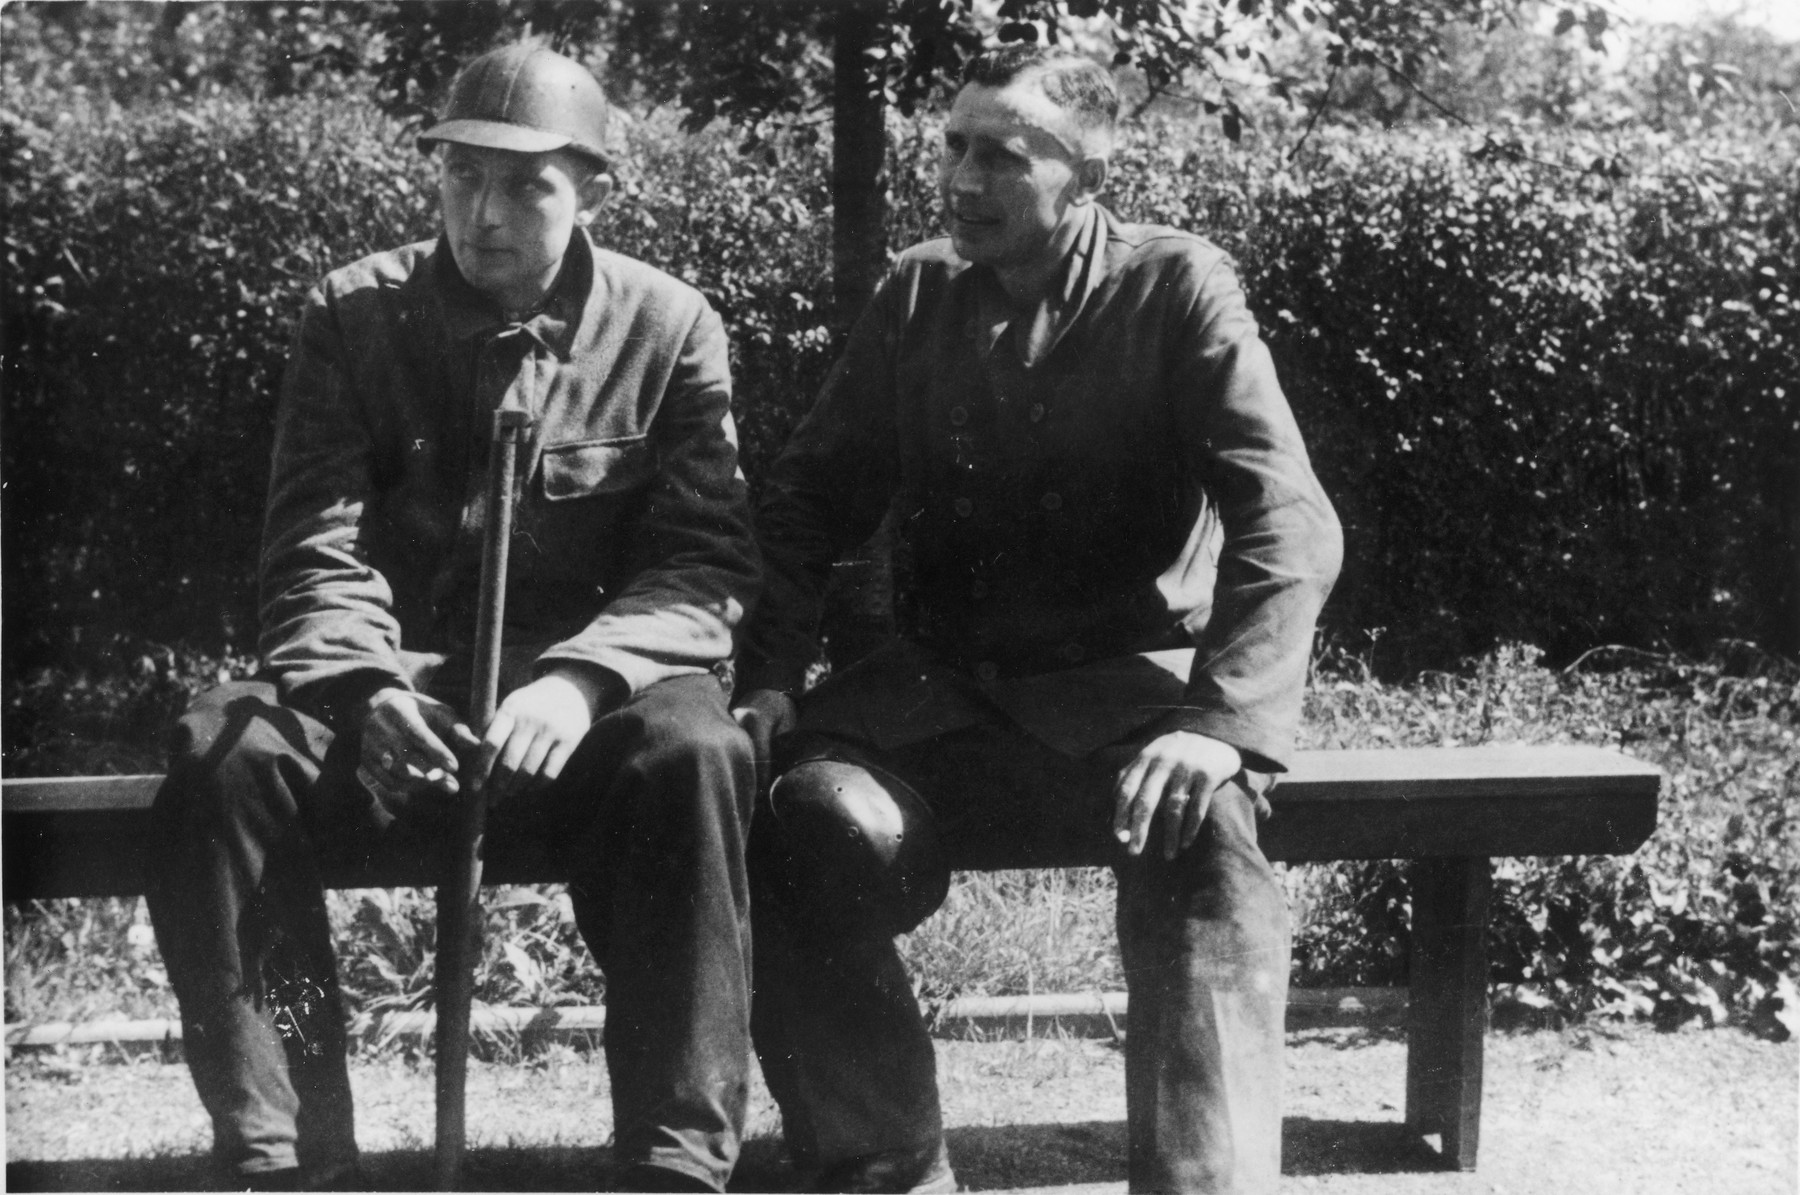 "Two SS officers visit a coal mine near Auschwitz.  The original caption reads ""Besichtigung eines Kohlenbergwerks."" (visiting a coal mine)  Pictured on the right is Karl Hoecker."